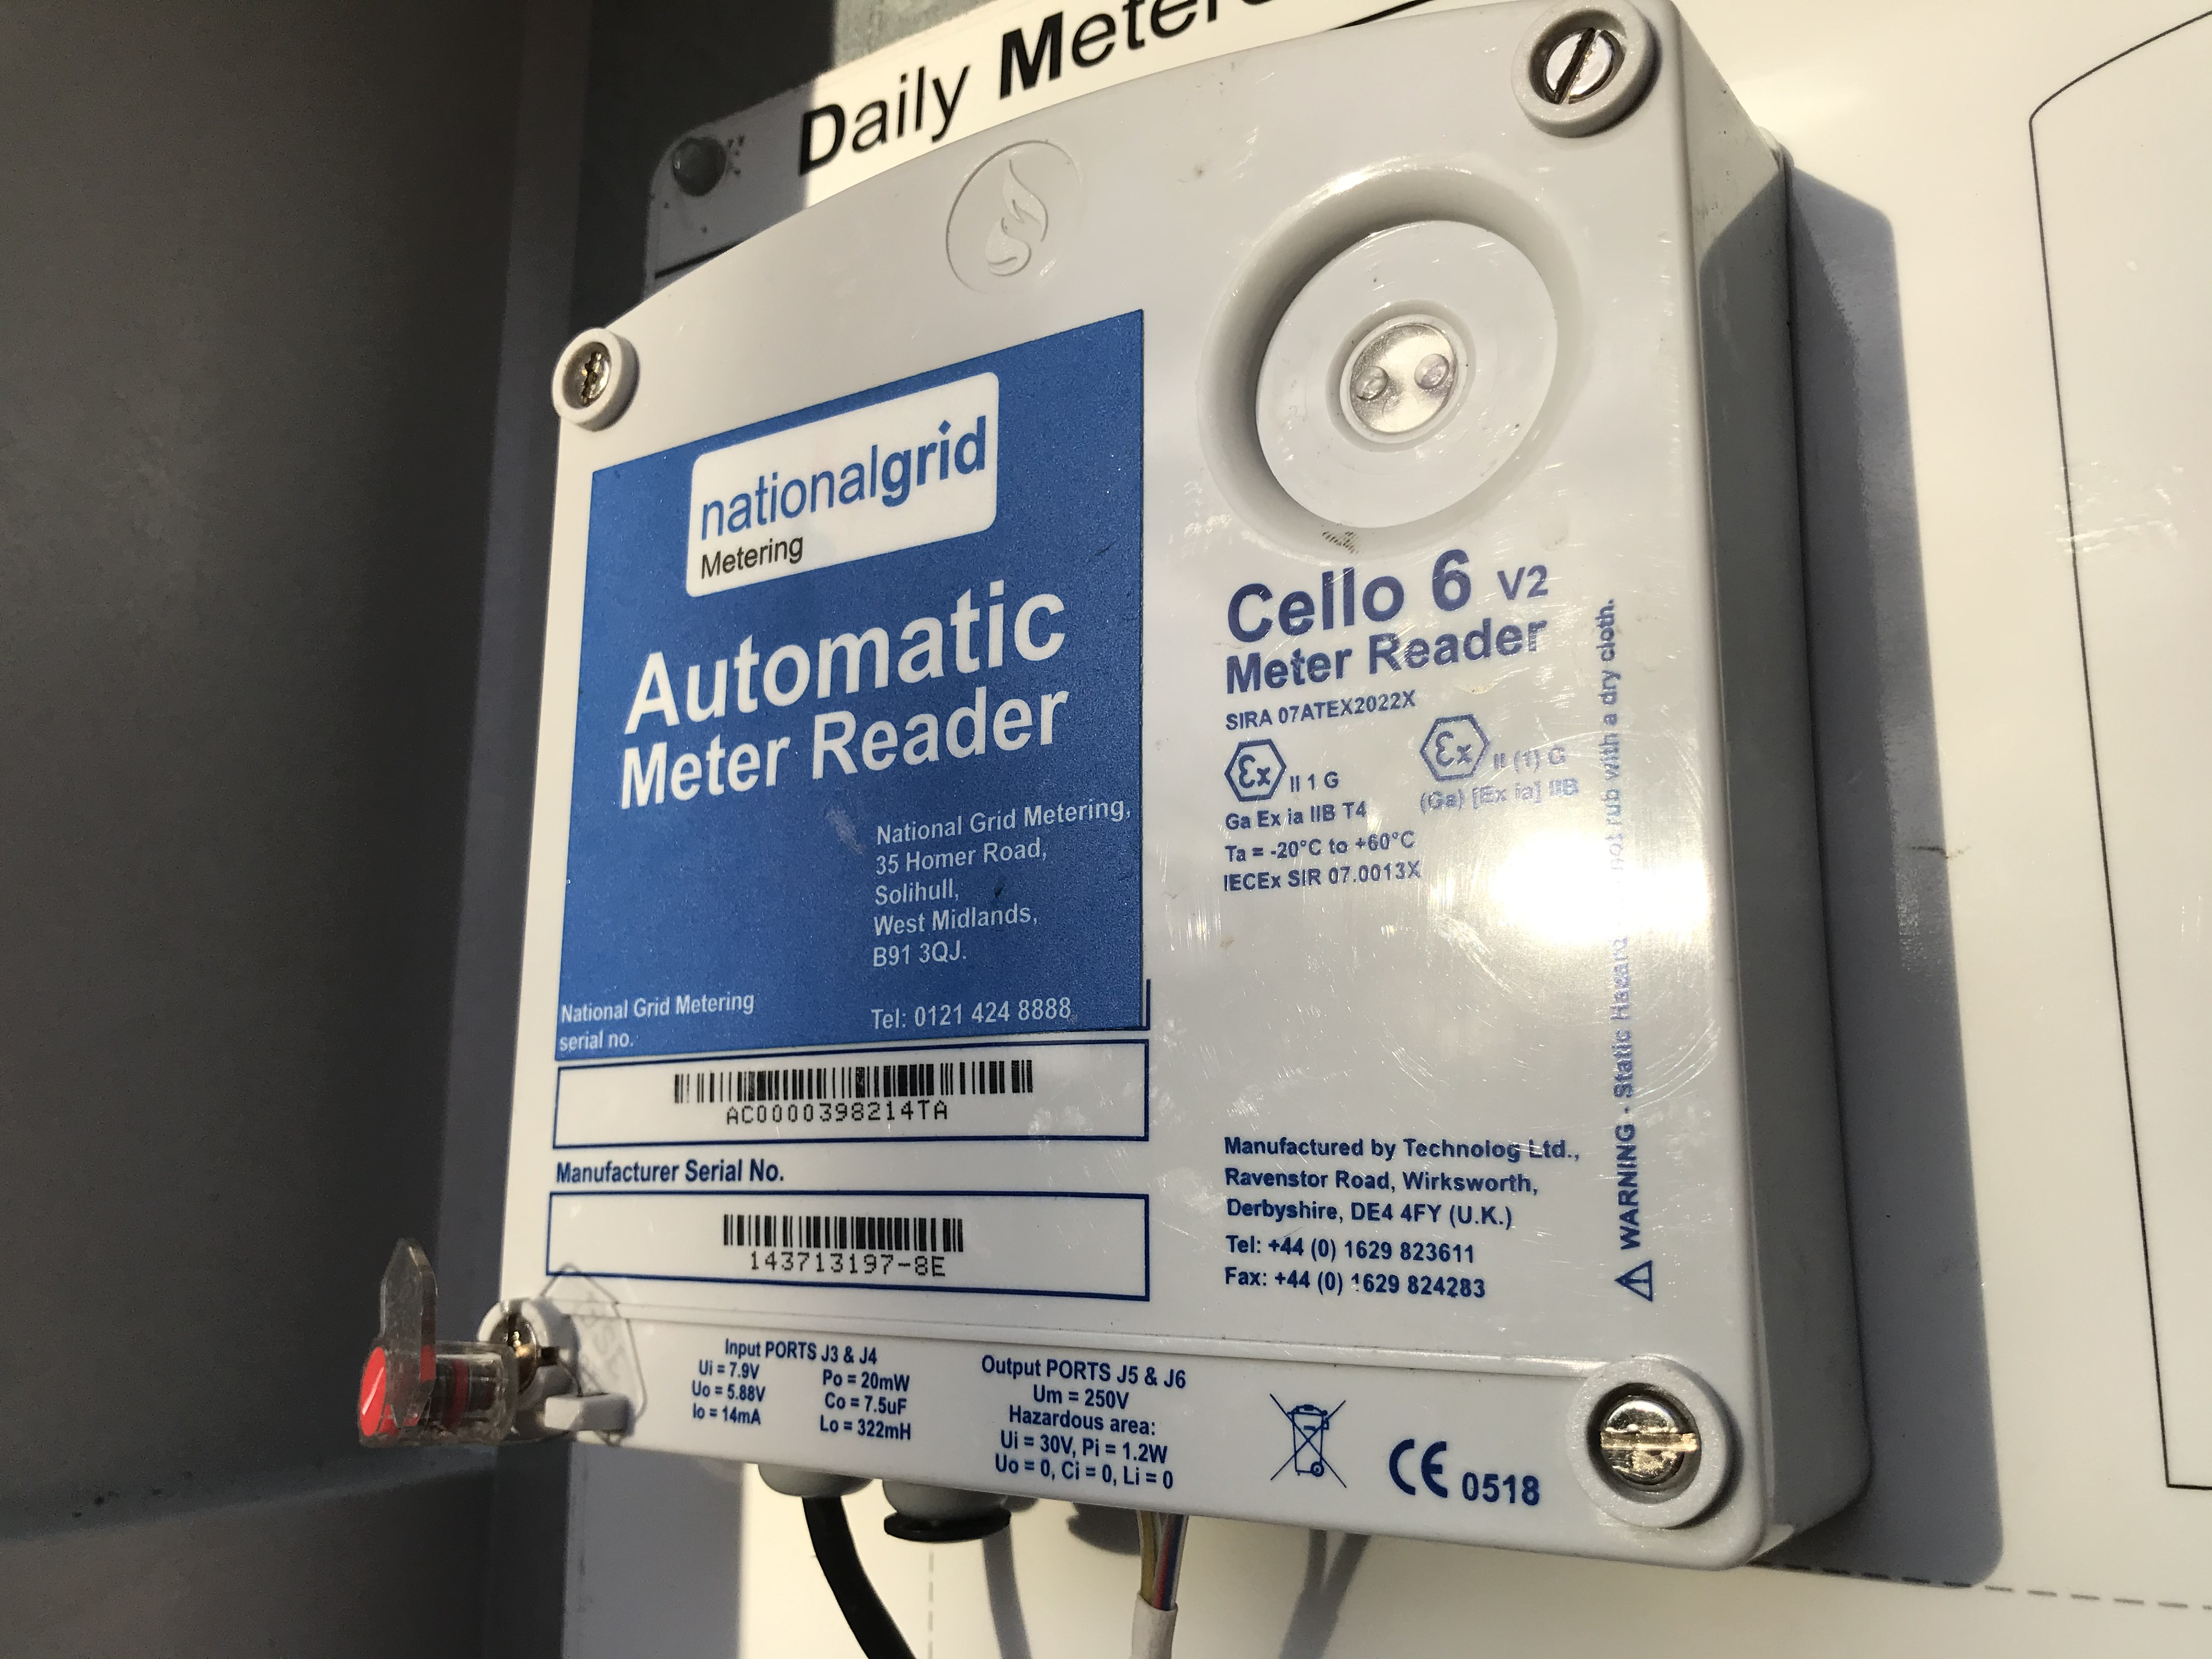 Advanced meter reading